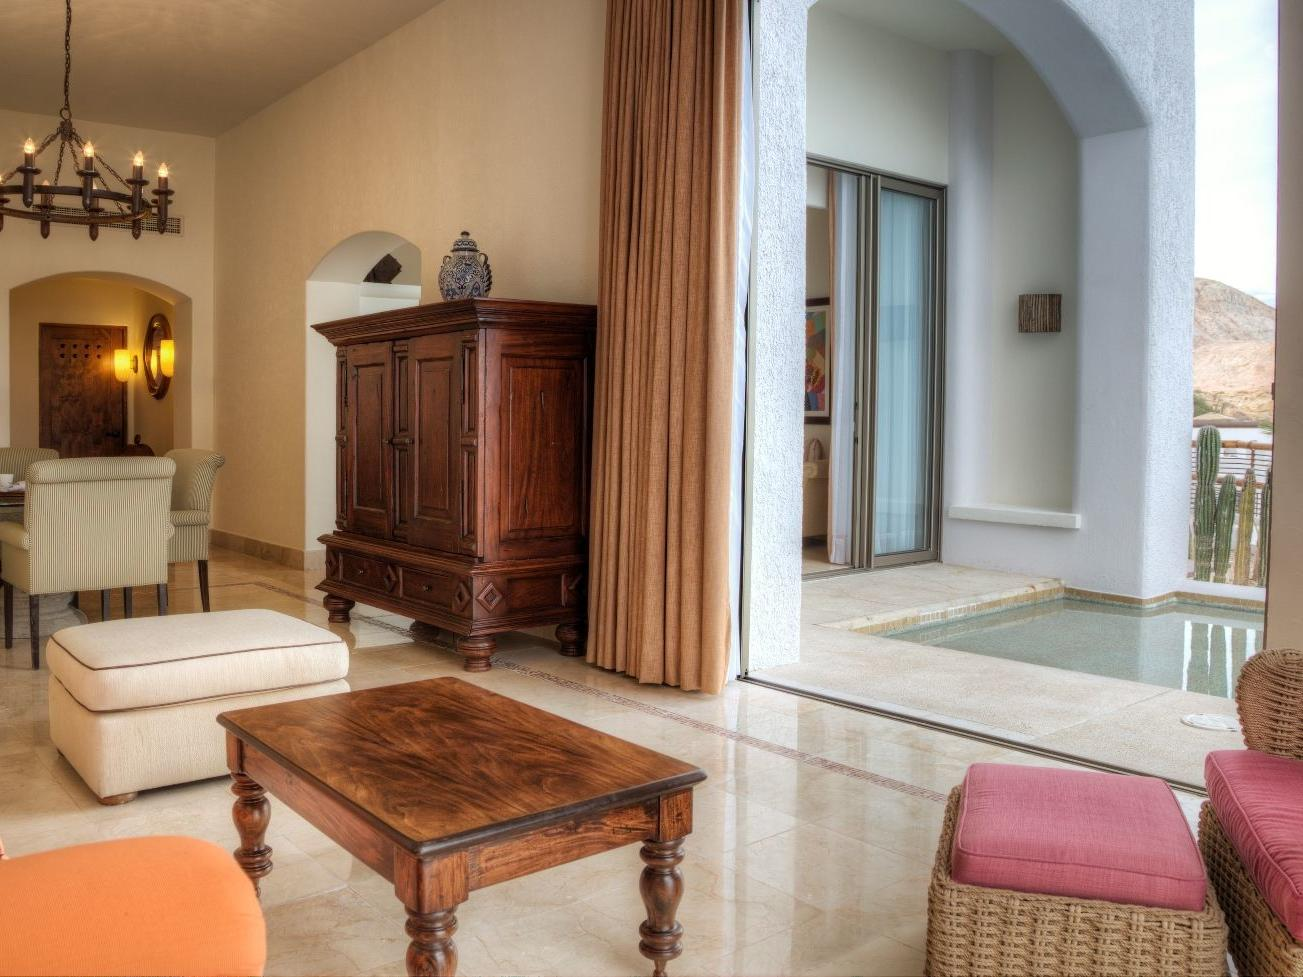 A wooden table and chair in a room - Marquis Los Cabos